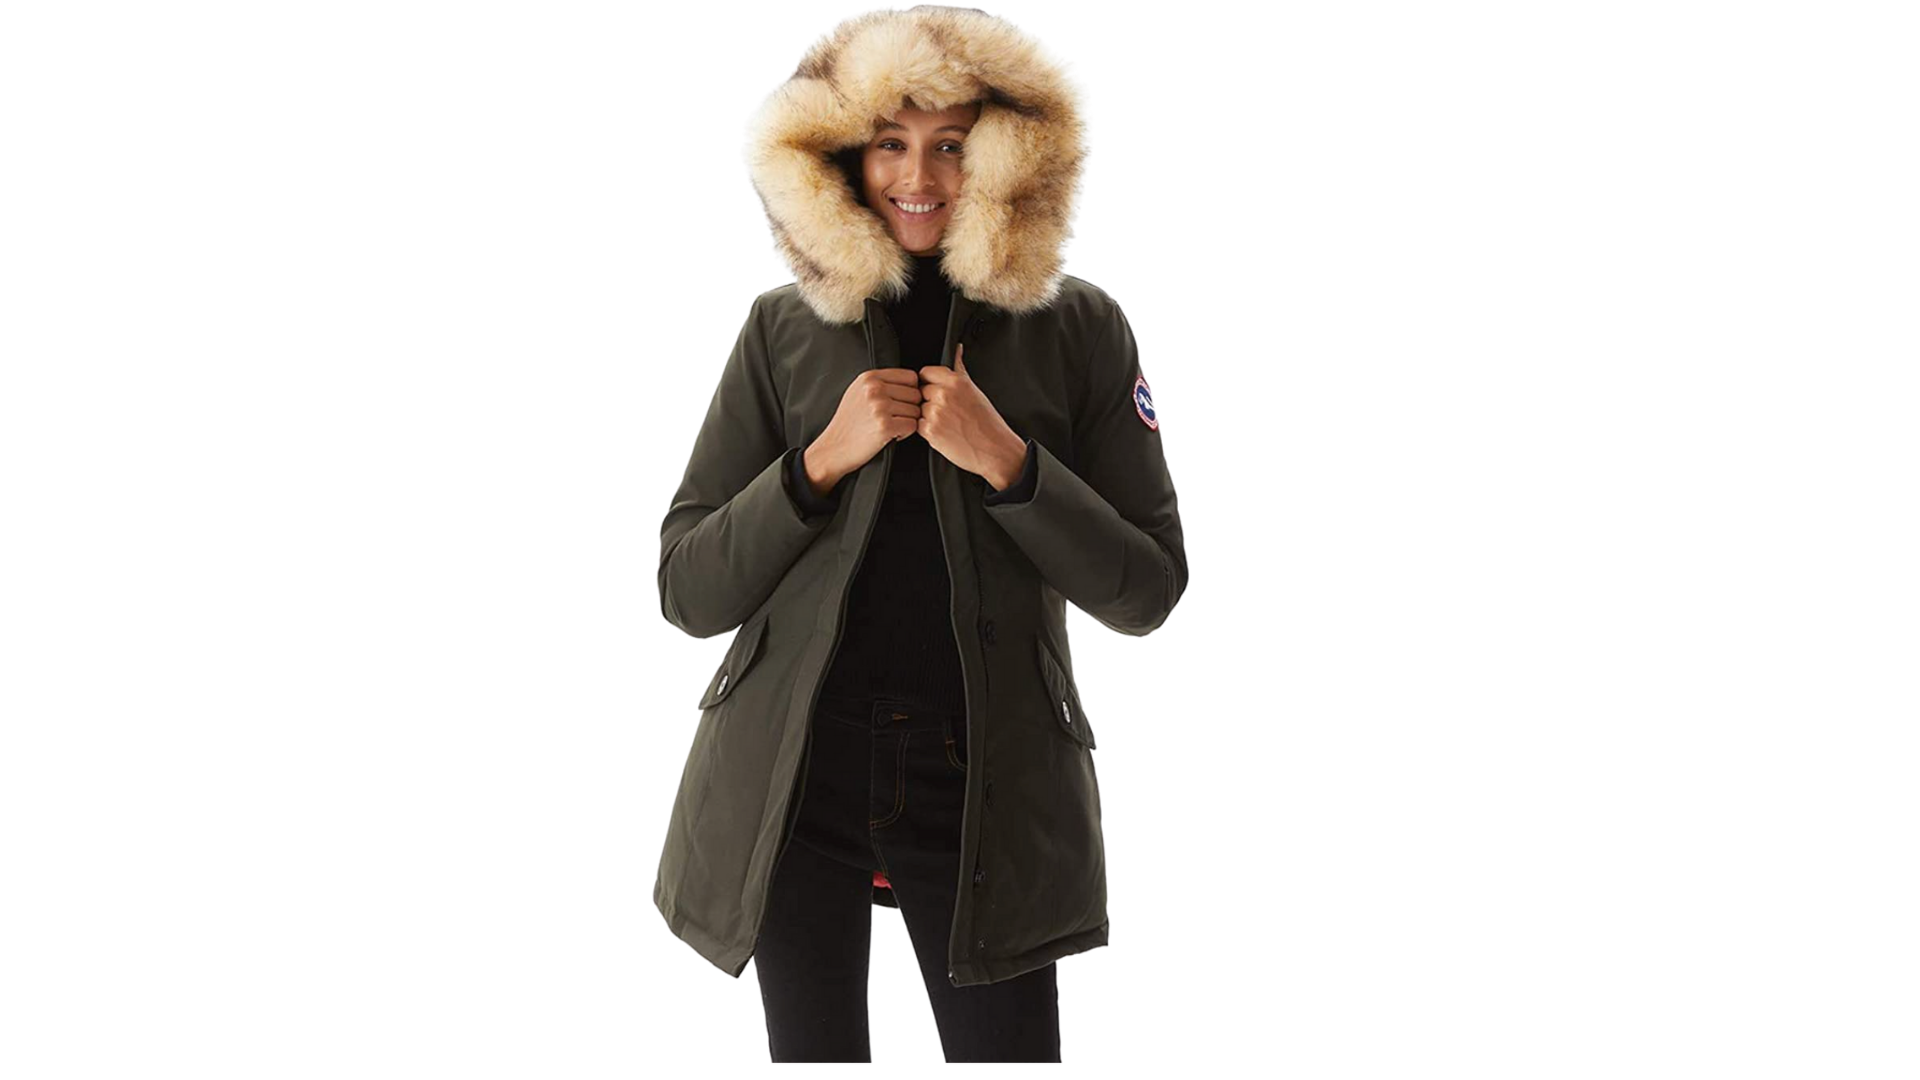 down parka best women's winter coats for extreme cold